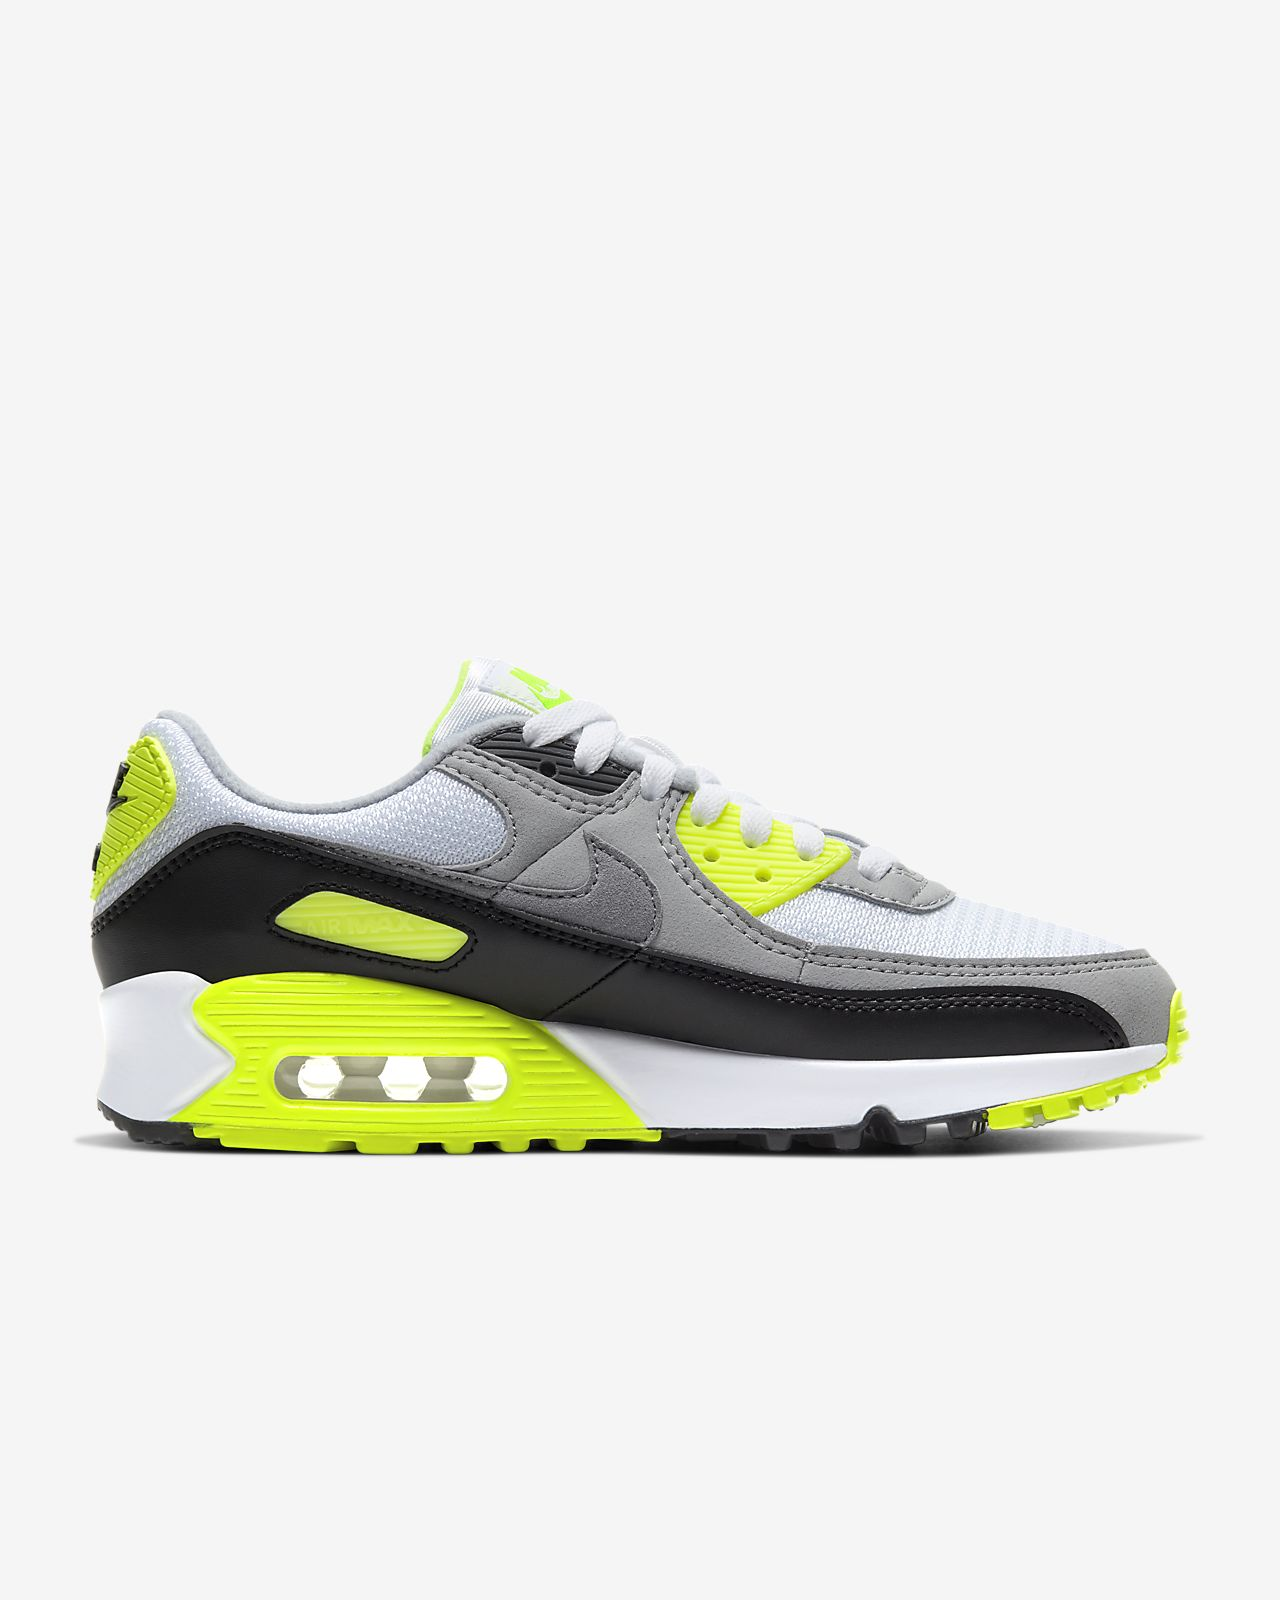 Nike Air Max Volt Sneakers Clothing to Match |